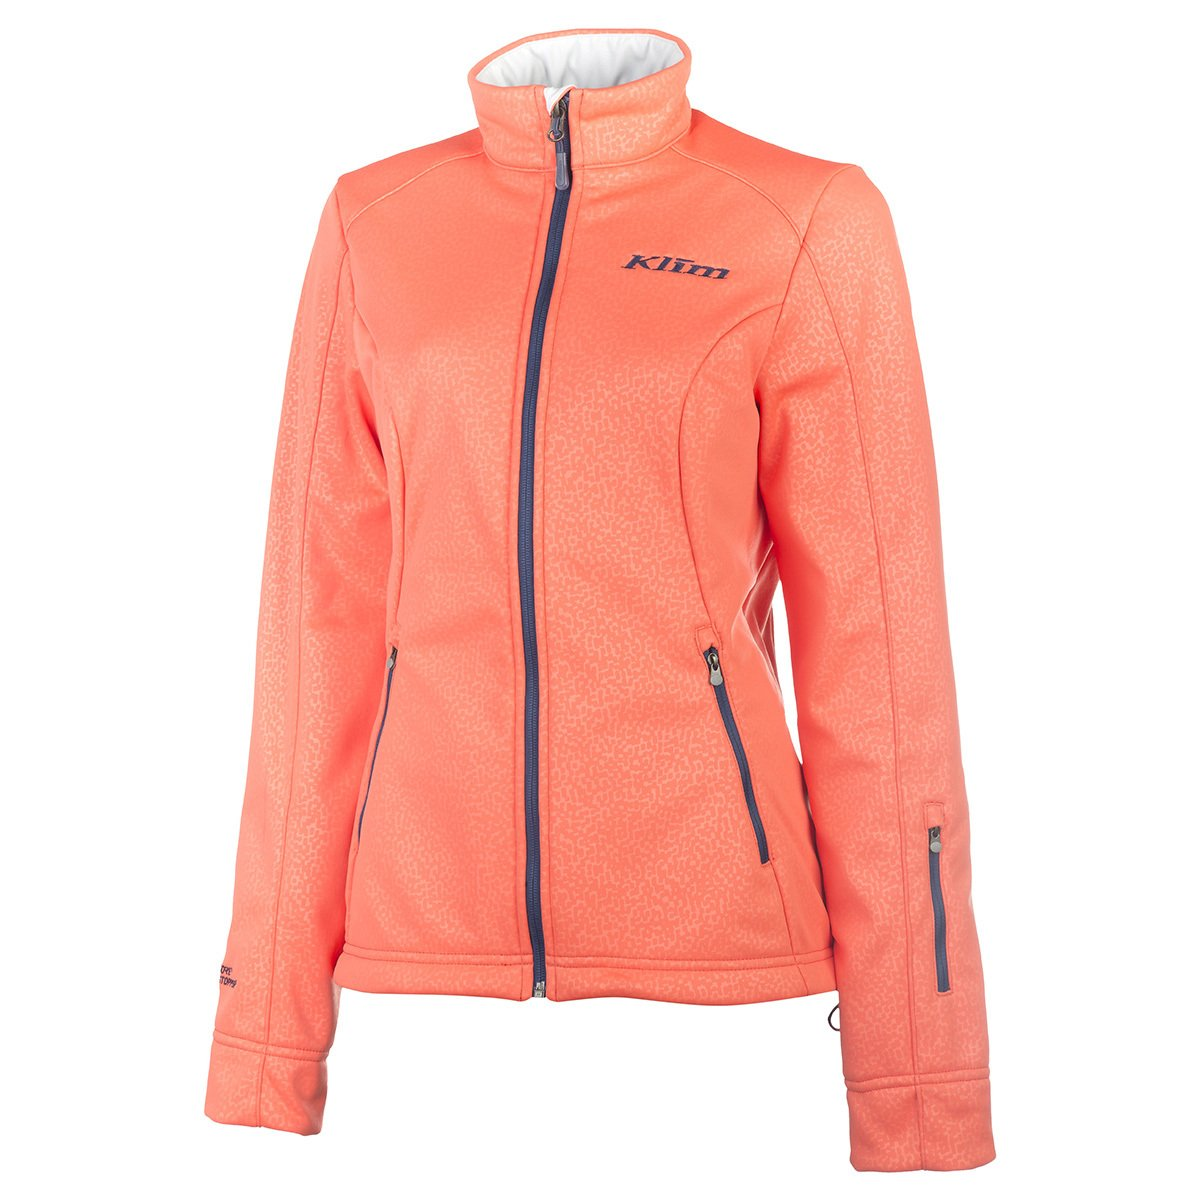 Klim Whislter Womens Jacket - Small / Orange